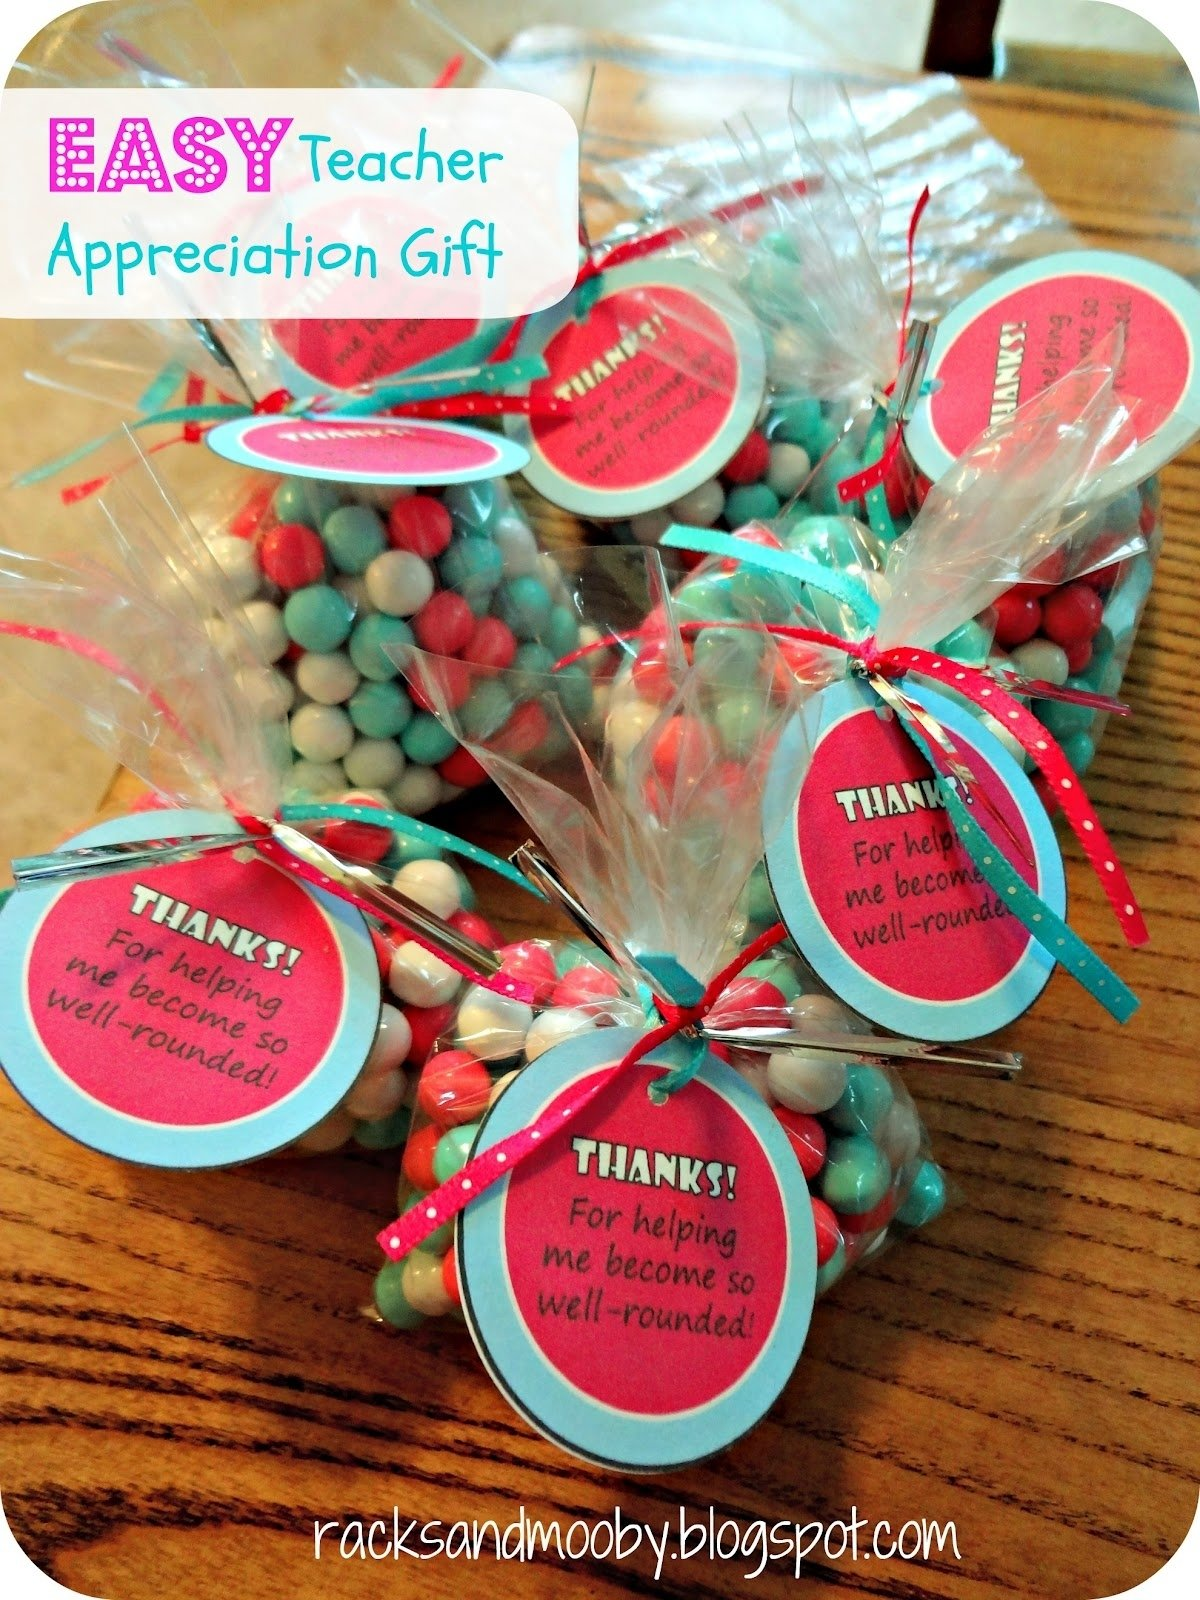 10 Most Recommended Cute Ideas For Teacher Appreciation Week inexpensive and easy teacher appreciation gifts super cute super 2020